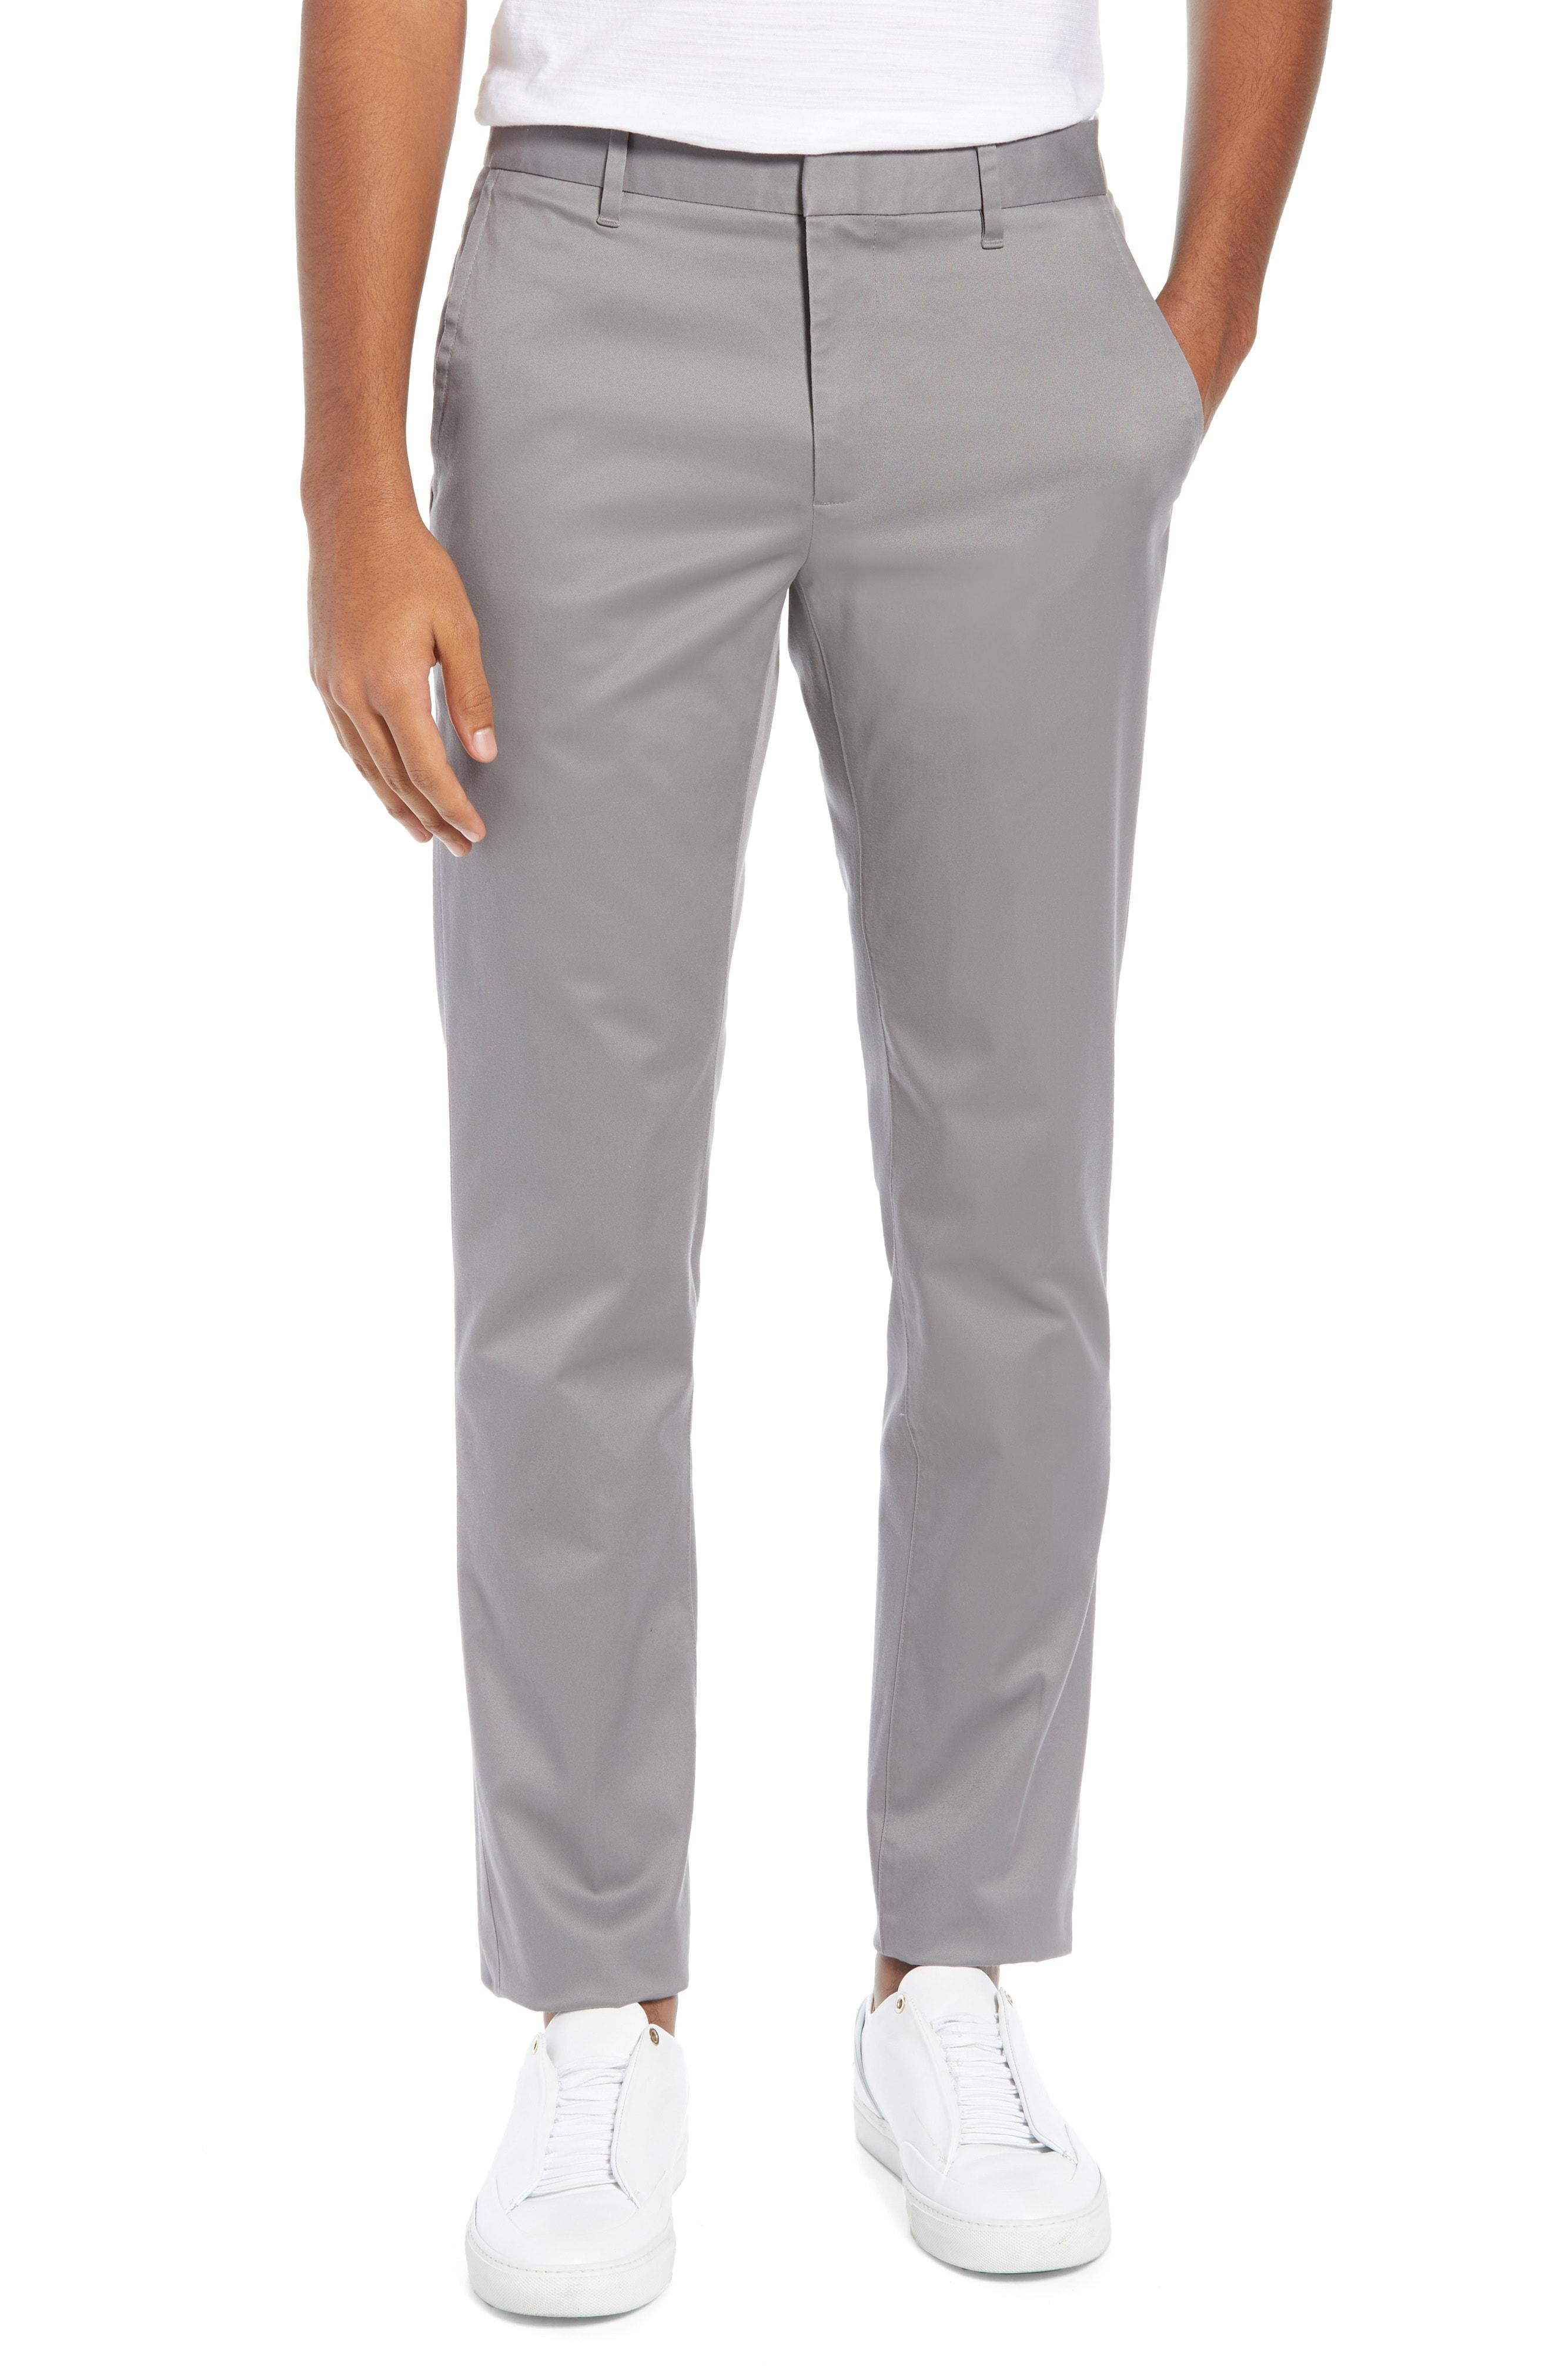 bb5f7886d43 Lyst - Bonobos Weekday Warrior Tailored Fit Stretch Dress Pants in ...